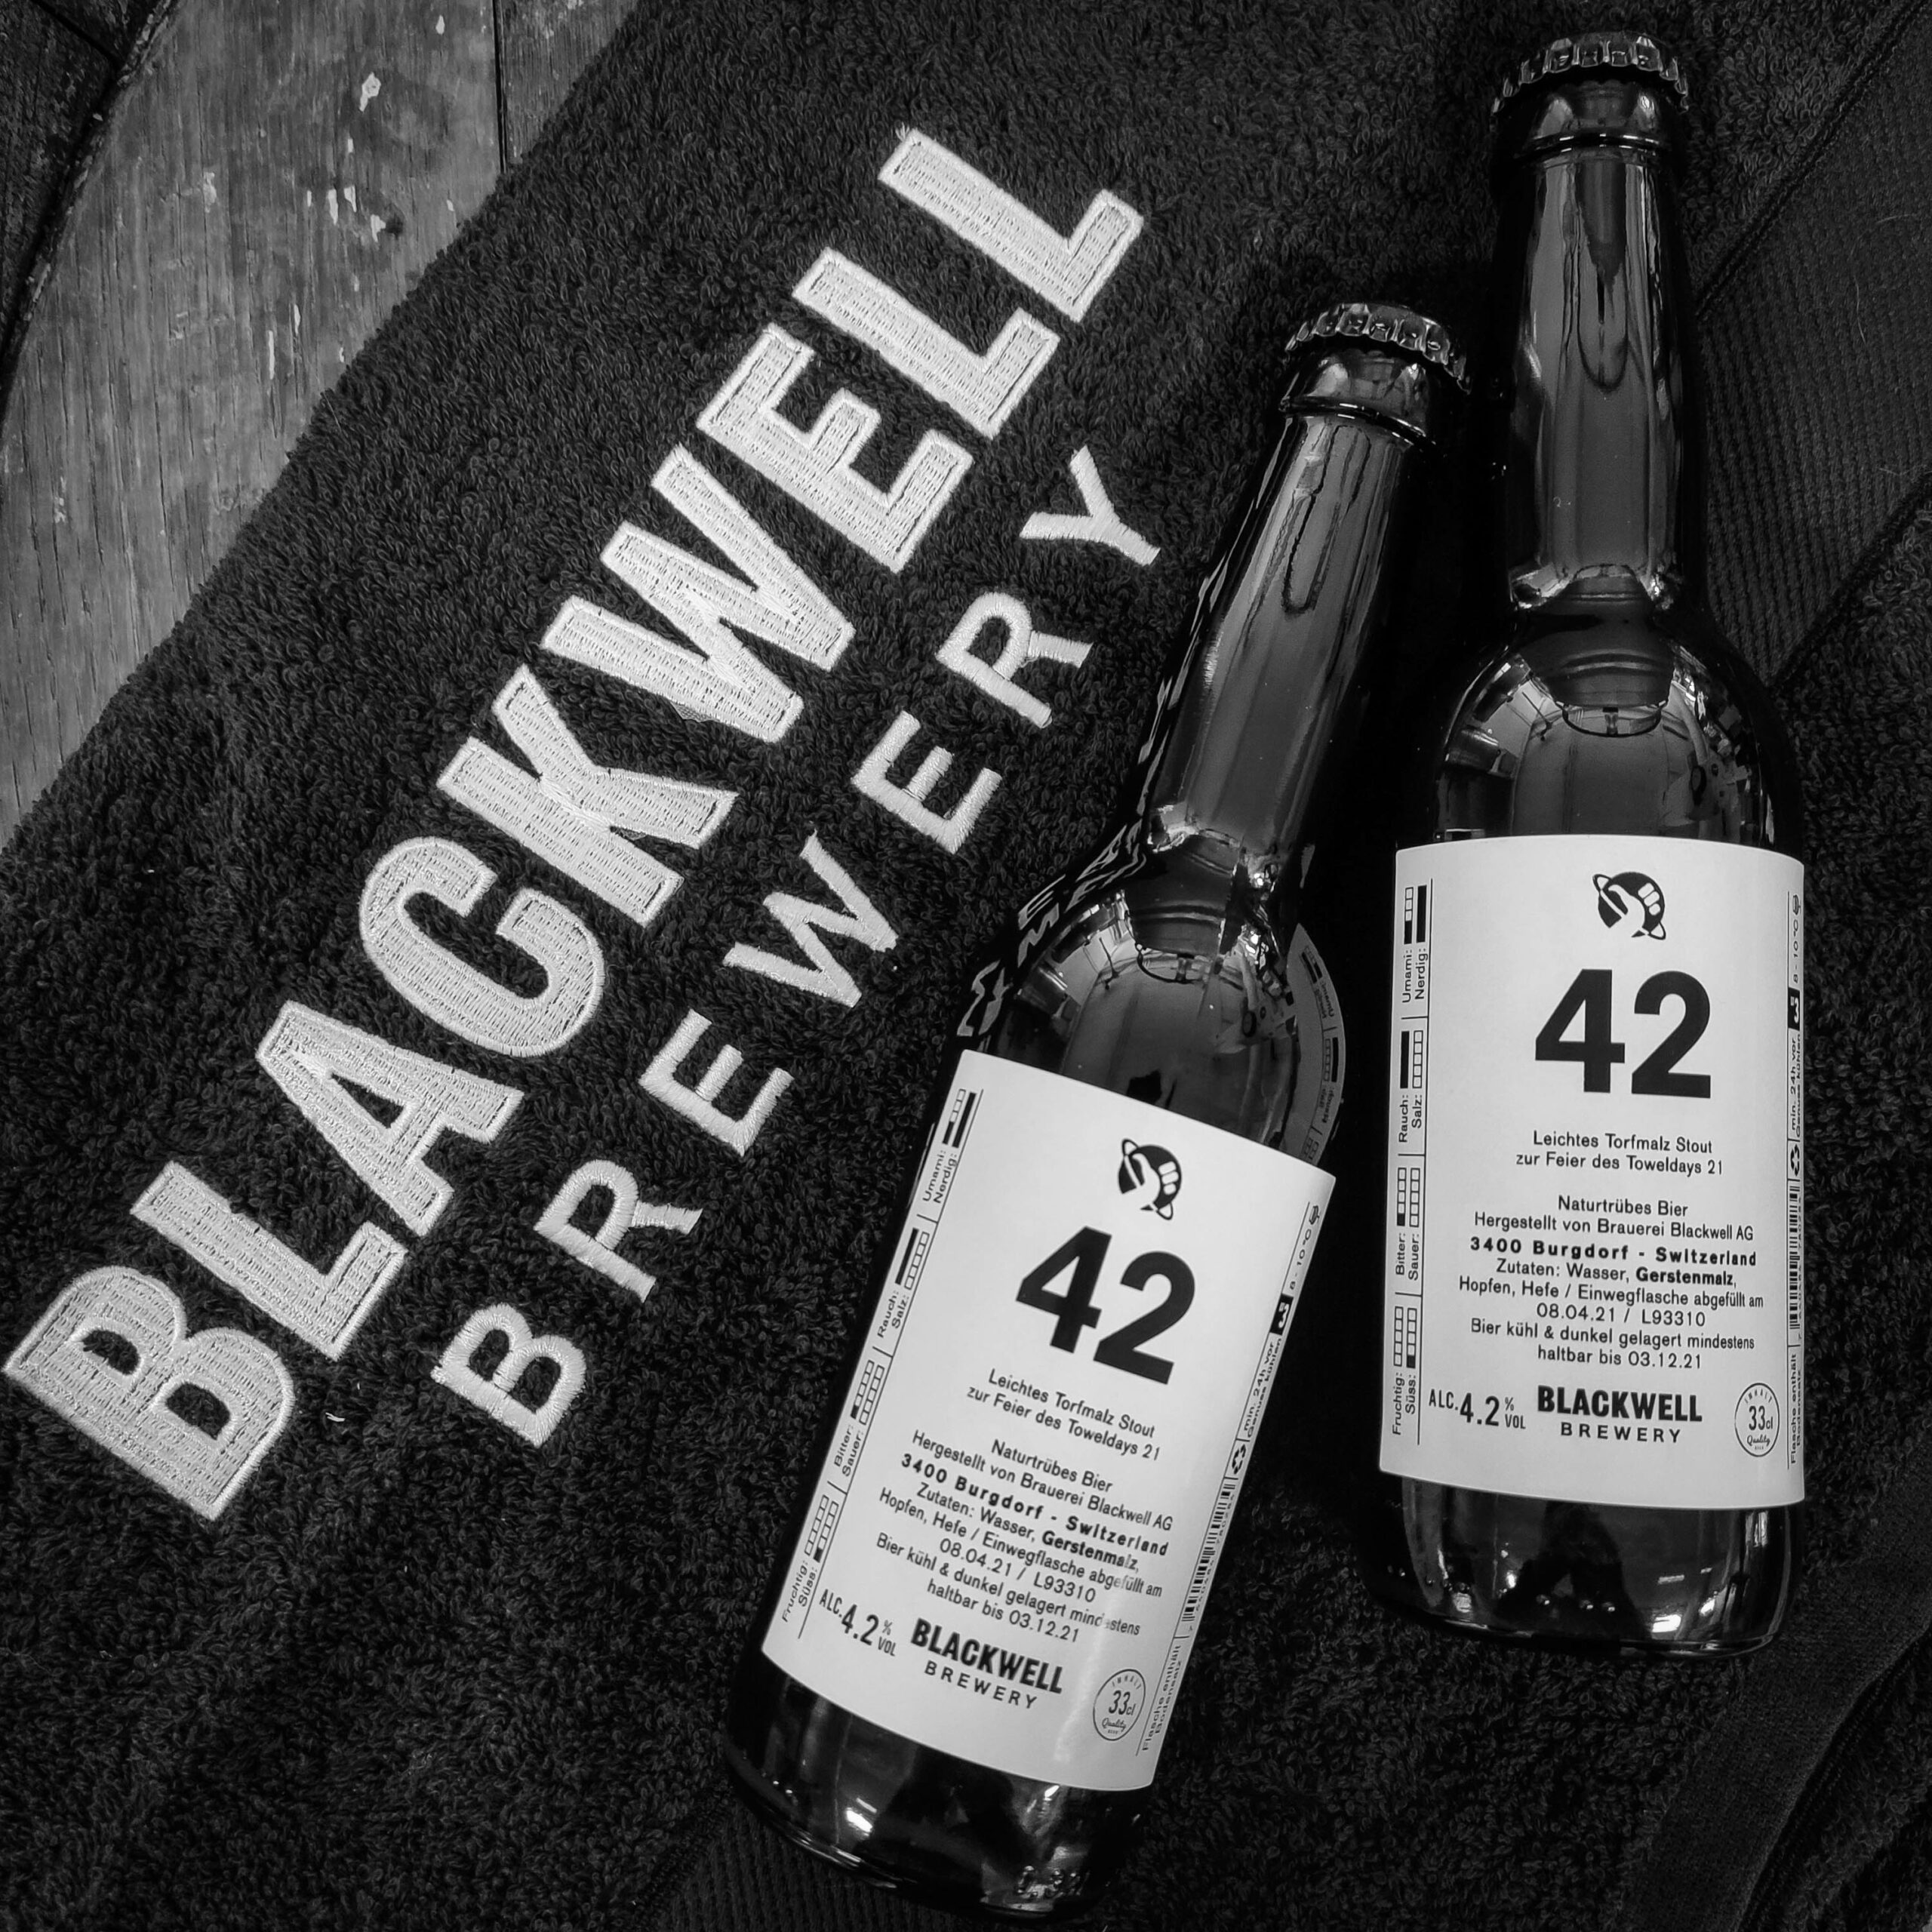 https://blackwellbrewery.ch/wp-content/uploads/2021/04/towelday-21-scaled.jpg